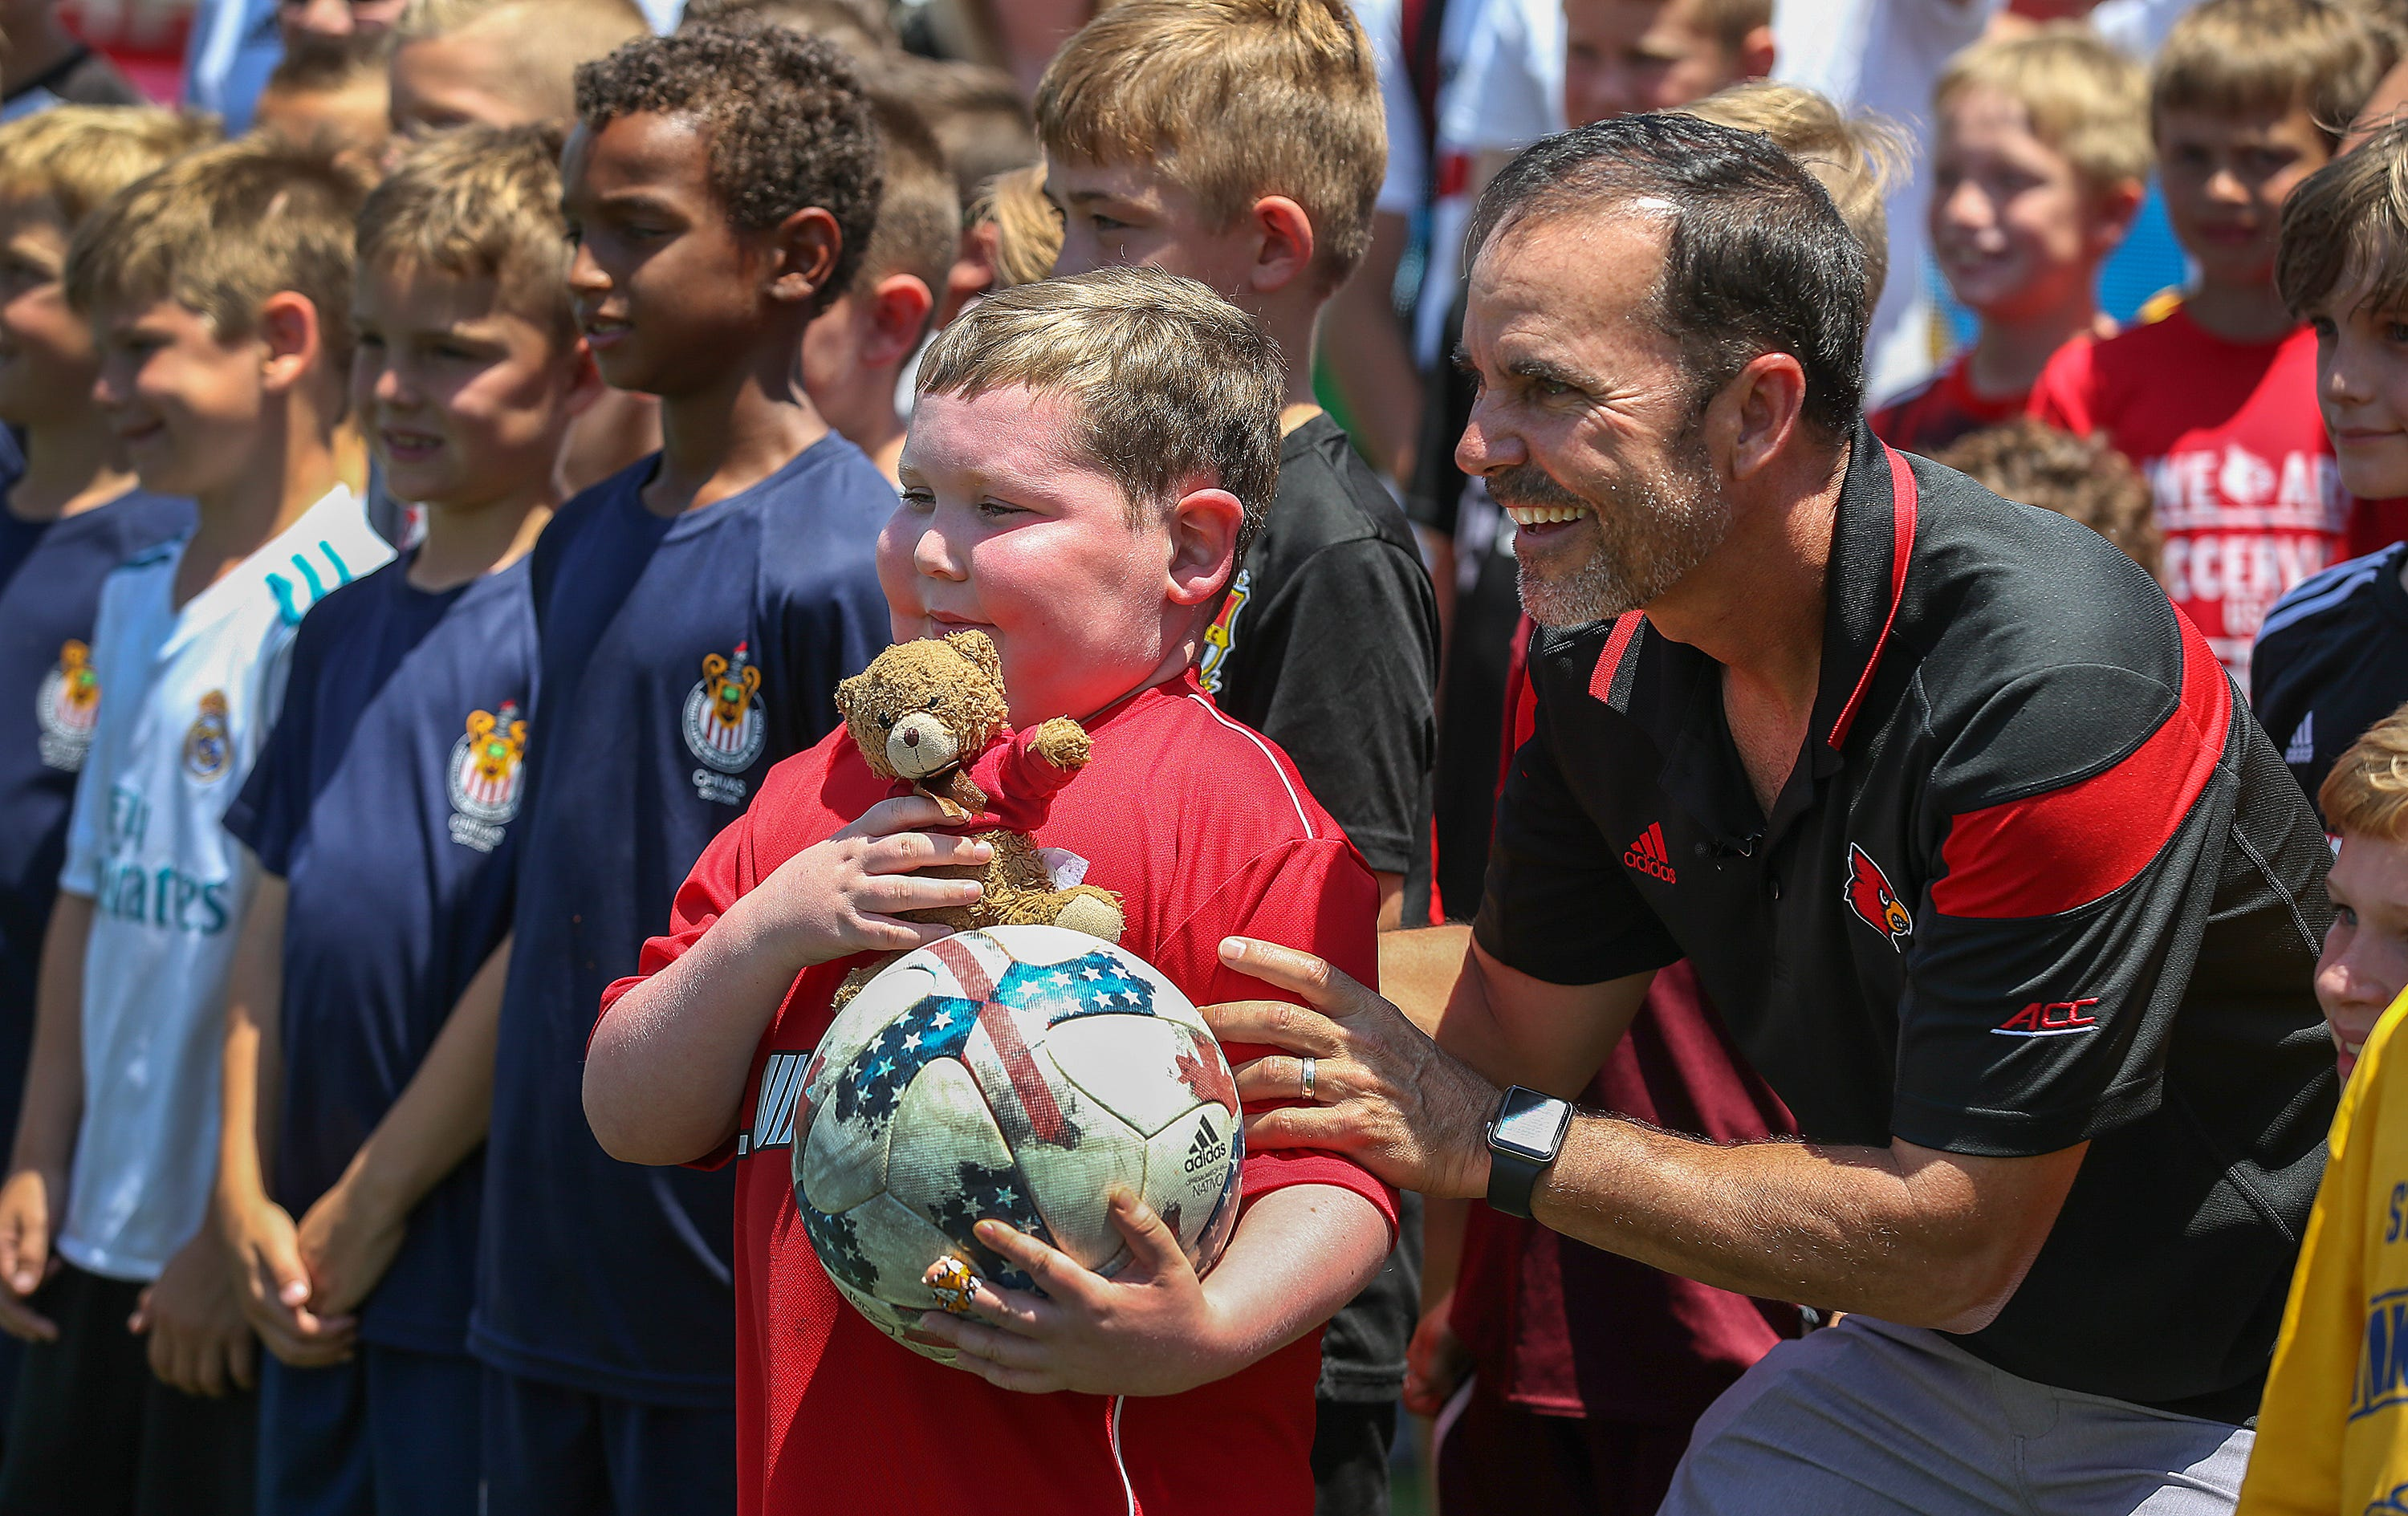 3146cfe69c7 University of Louisville men s soccer team brings joy to 6-year-old boy with